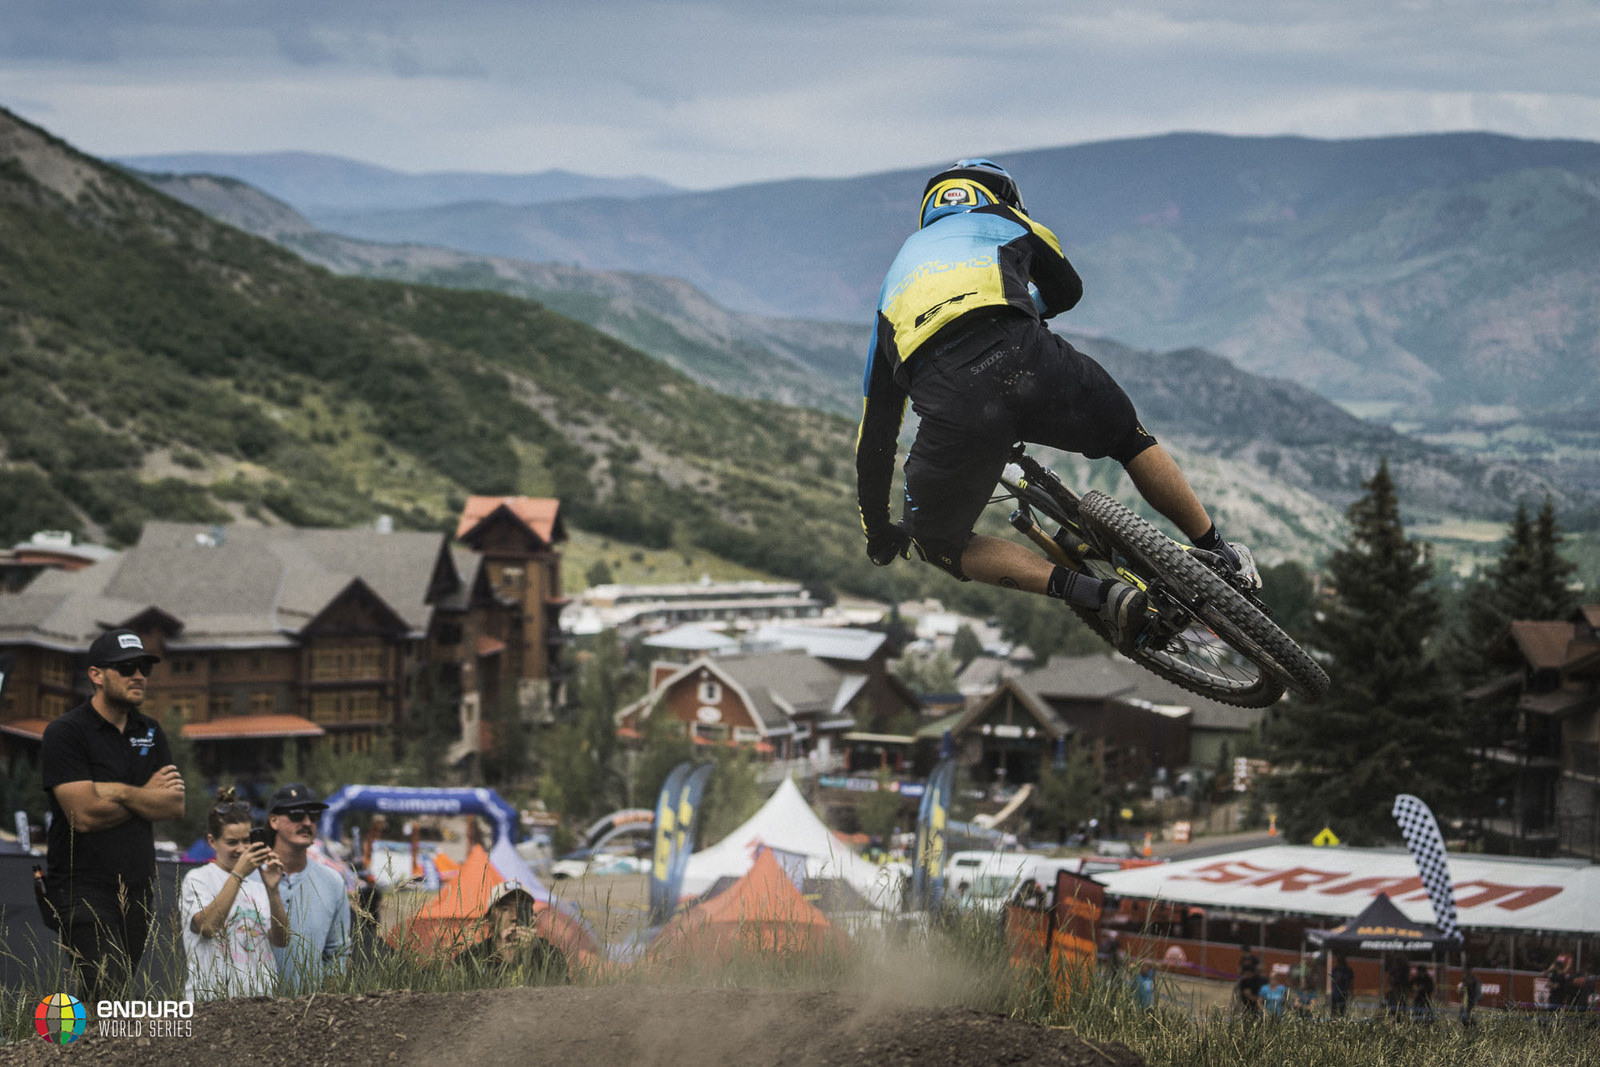 Belgium's Martin Maes whips his way to the line and 4th place this weekend.